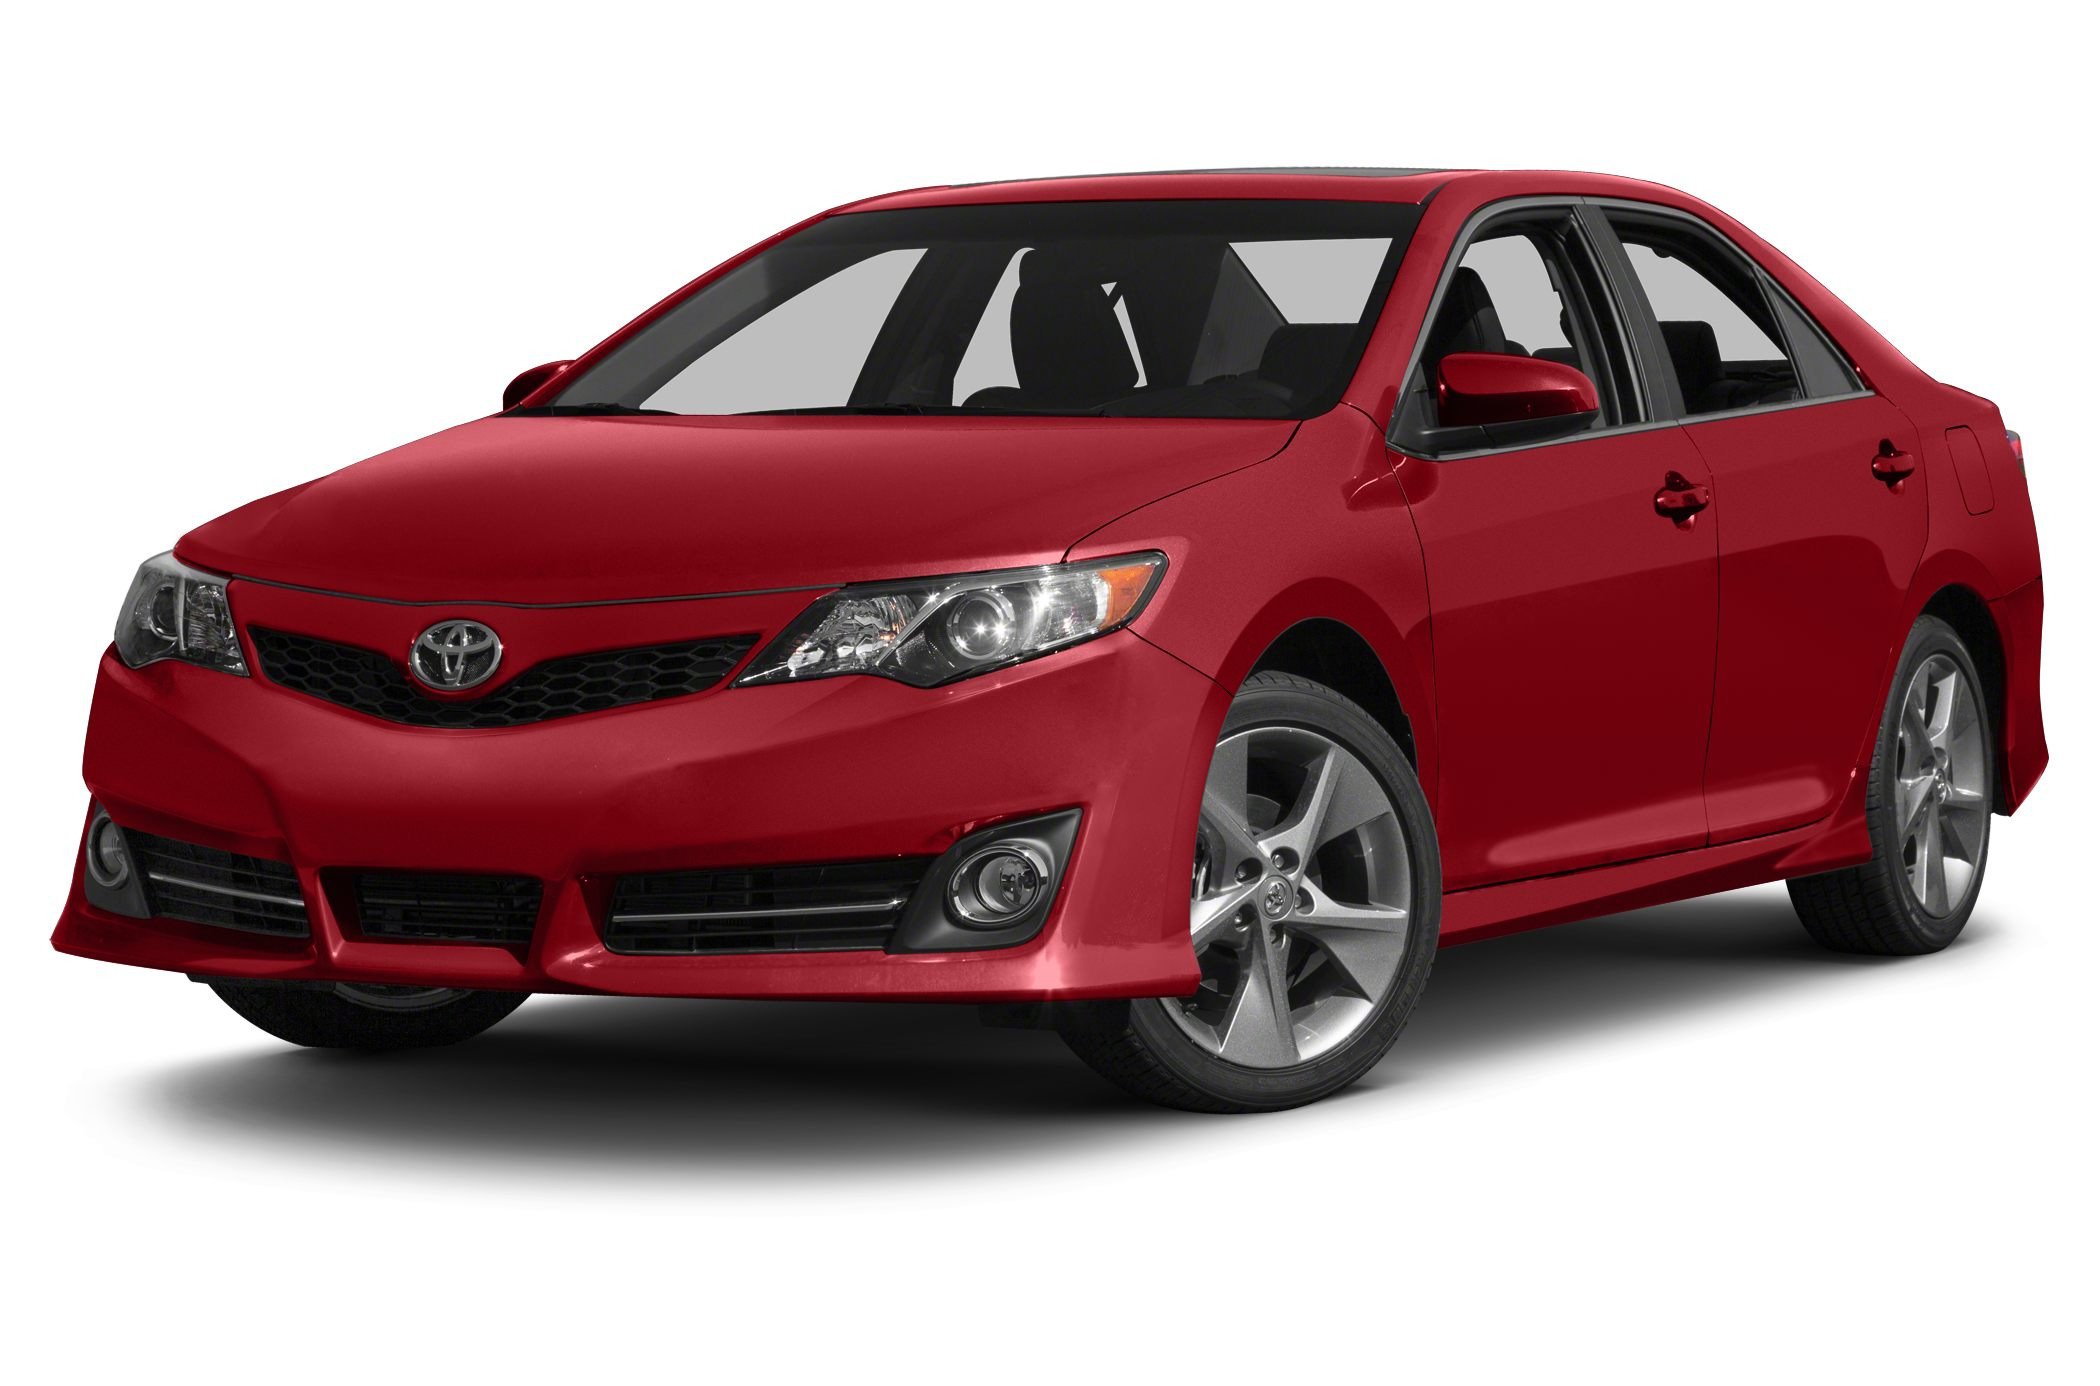 2014 Toyota Camry SE Sedan for sale in Whiteville for $19,900 with 45,526 miles